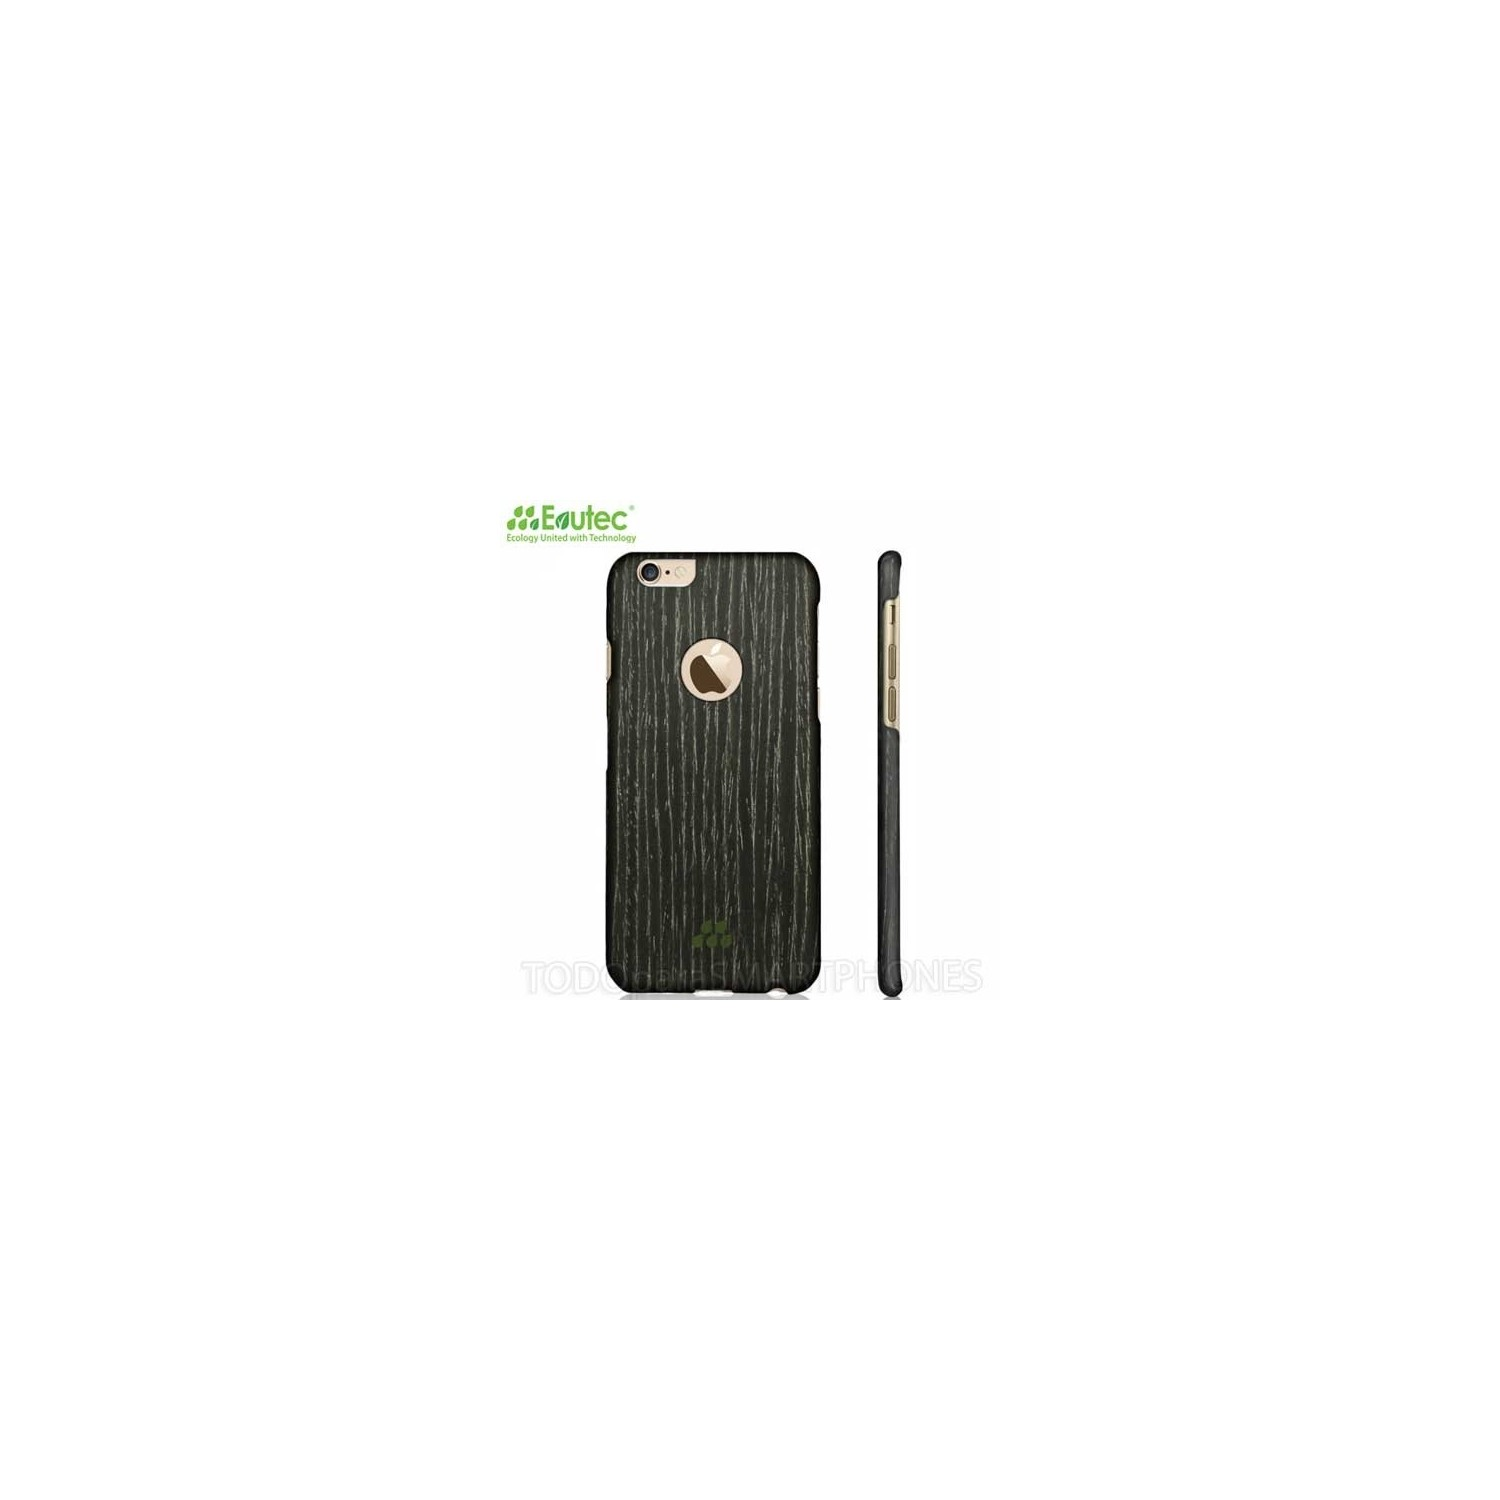 Case - Evutec Wood S for iPhone 6 Black Apricot